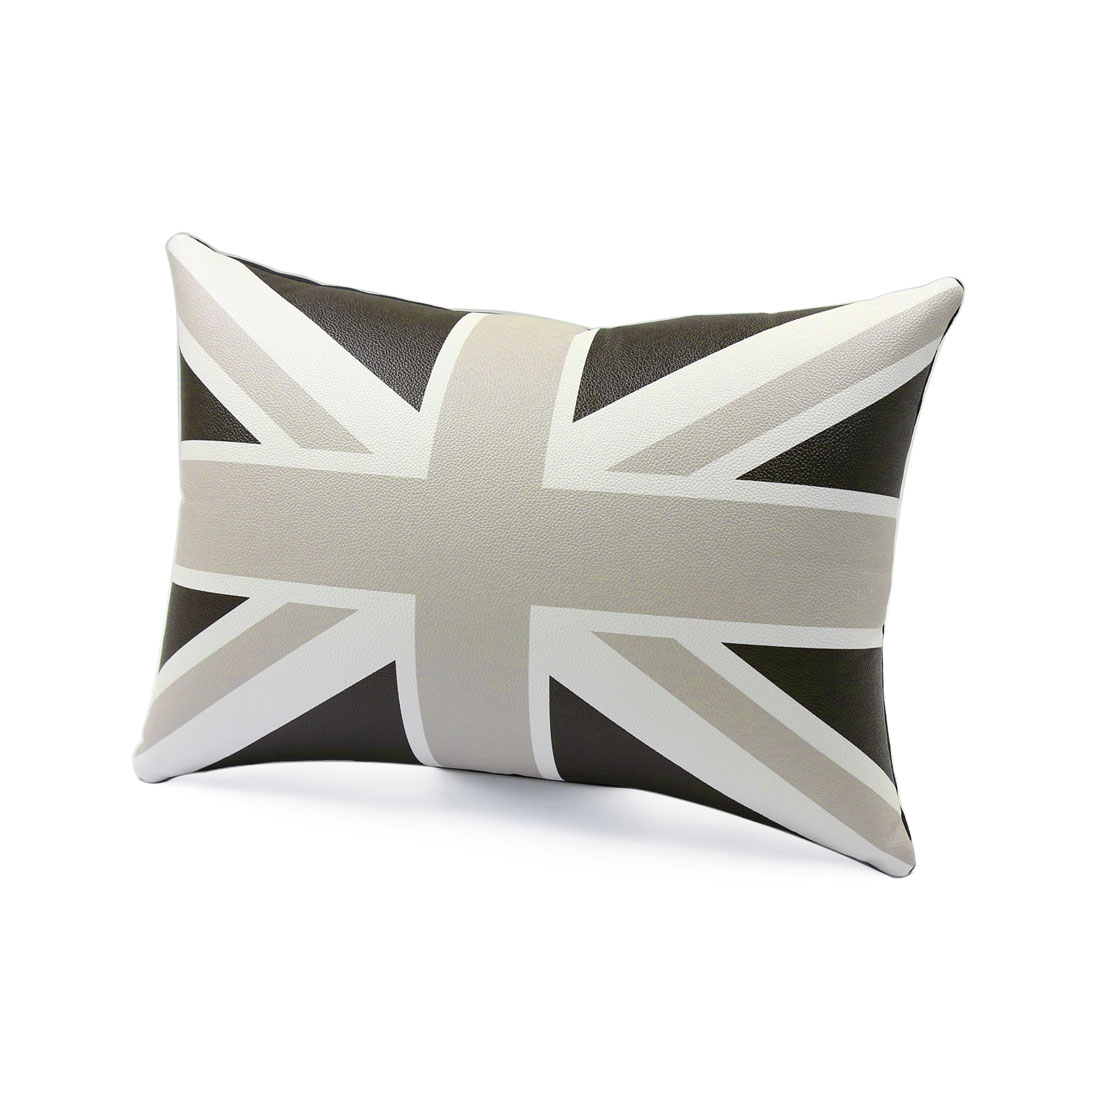 Car Home Sofa Decor Union Jack Flag Print Throw Pillow Cushion Cover 40cm x 28cm x 12cm